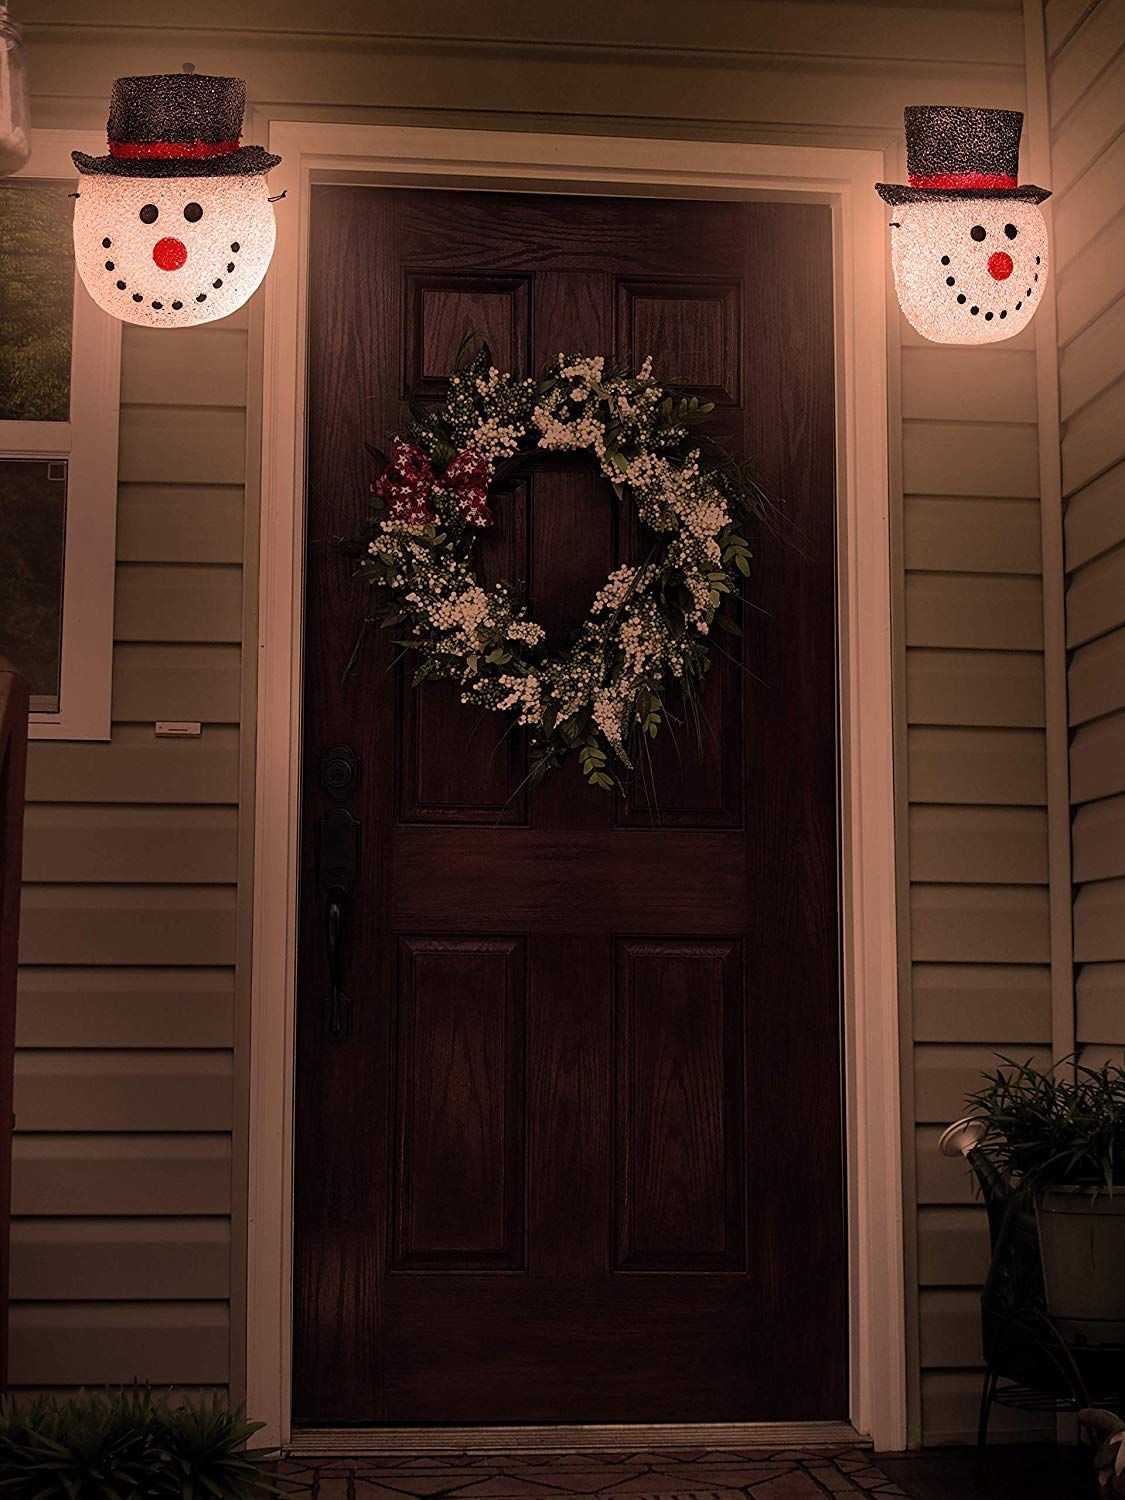 Besti Snowman Porch Light Cover Holiday And Christmas Decorations You Can Get Additional De In 2020 Outdoor Christmas Lights Porch Light Covers Christmas Decorations